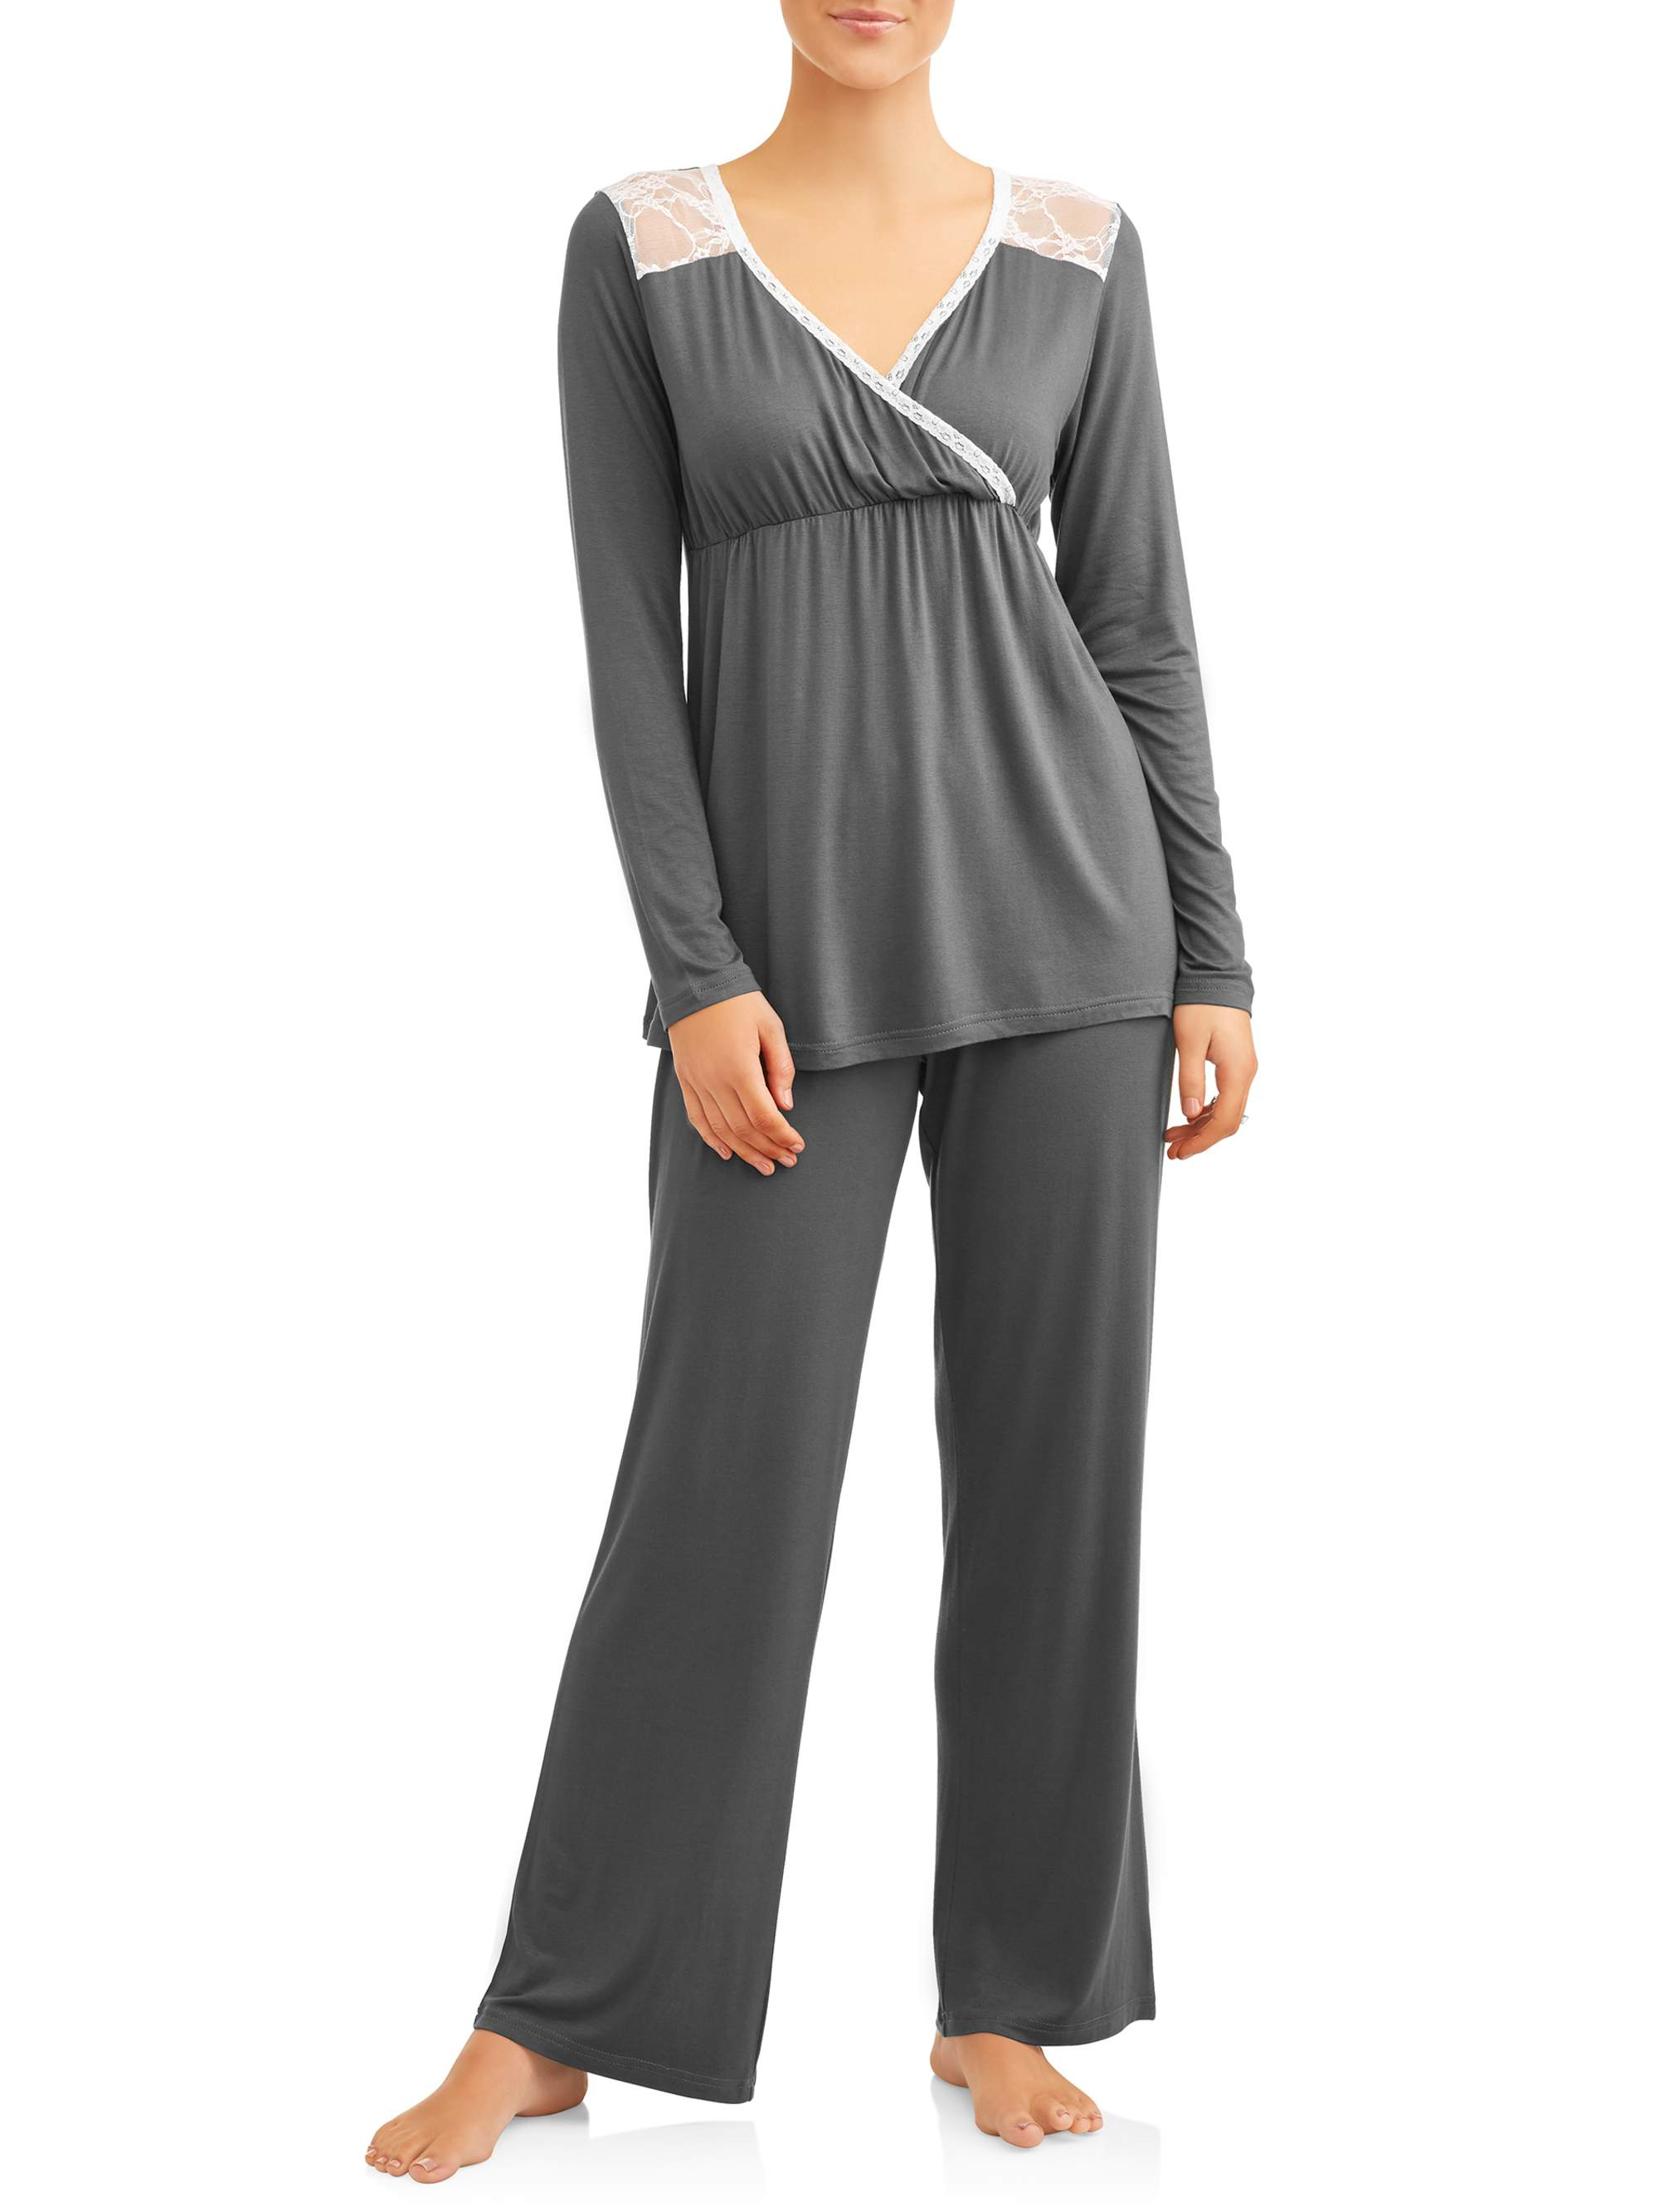 Plus Size Maternity Sleepwear